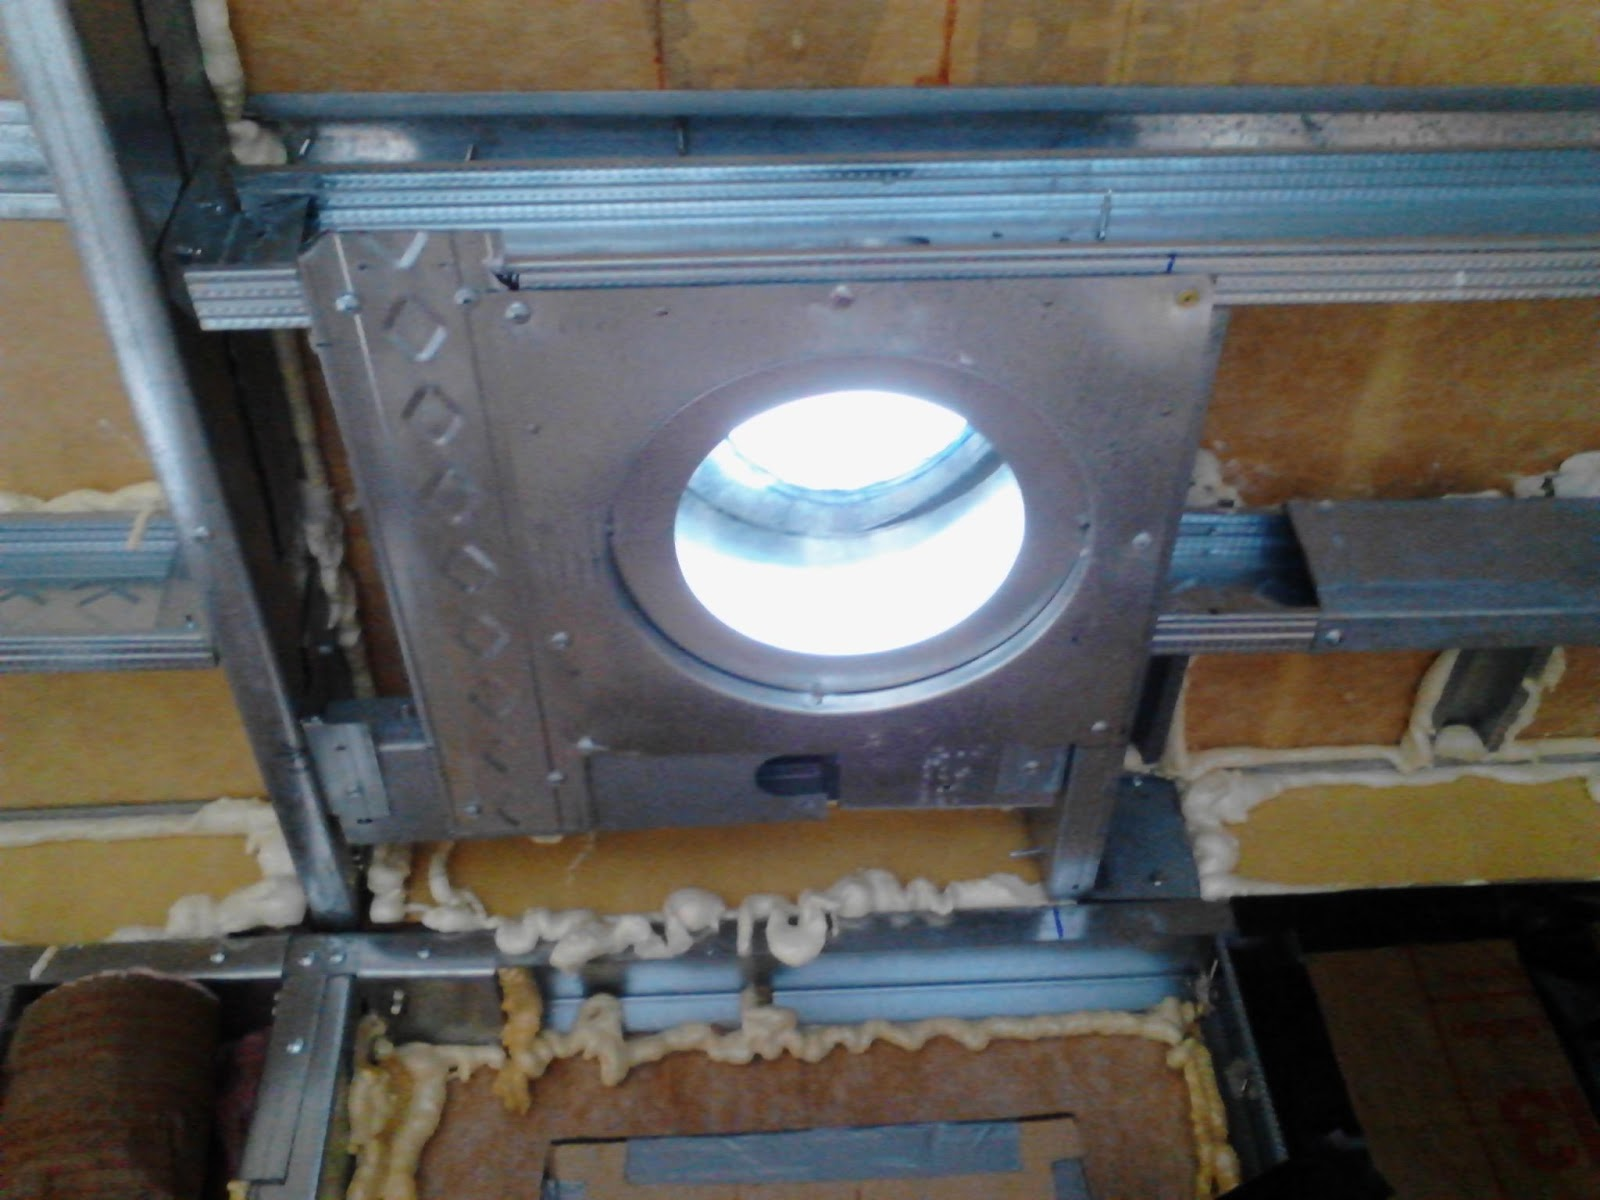 Radon A Fan Switch Wiring Quick Start Guide Of Diagram Junction Box Installing In Attic Free Engine Image For User Manual Download Light